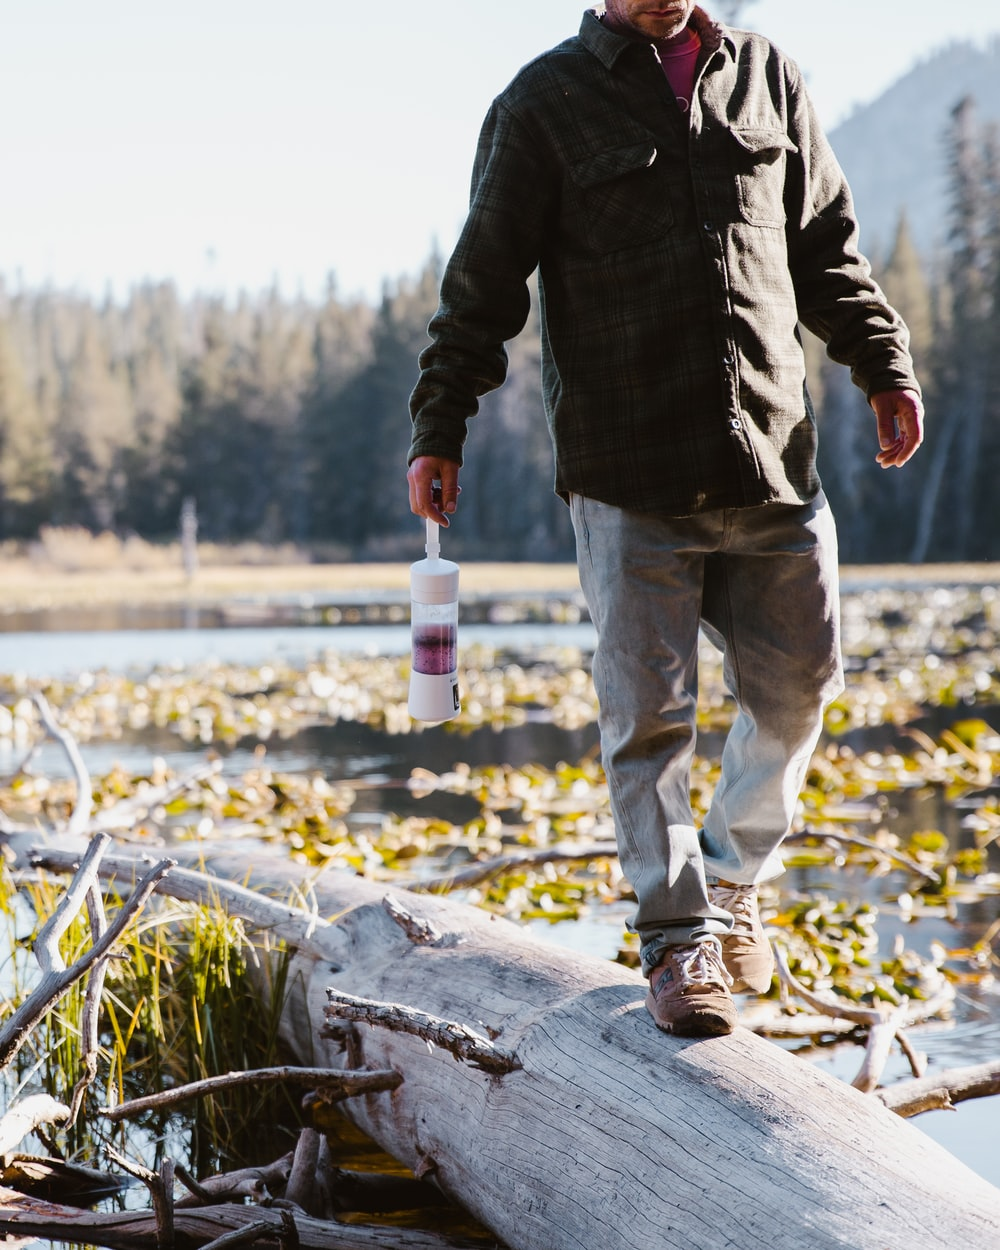 man in black jacket and gray jeans holding white bottle while crossing wood log